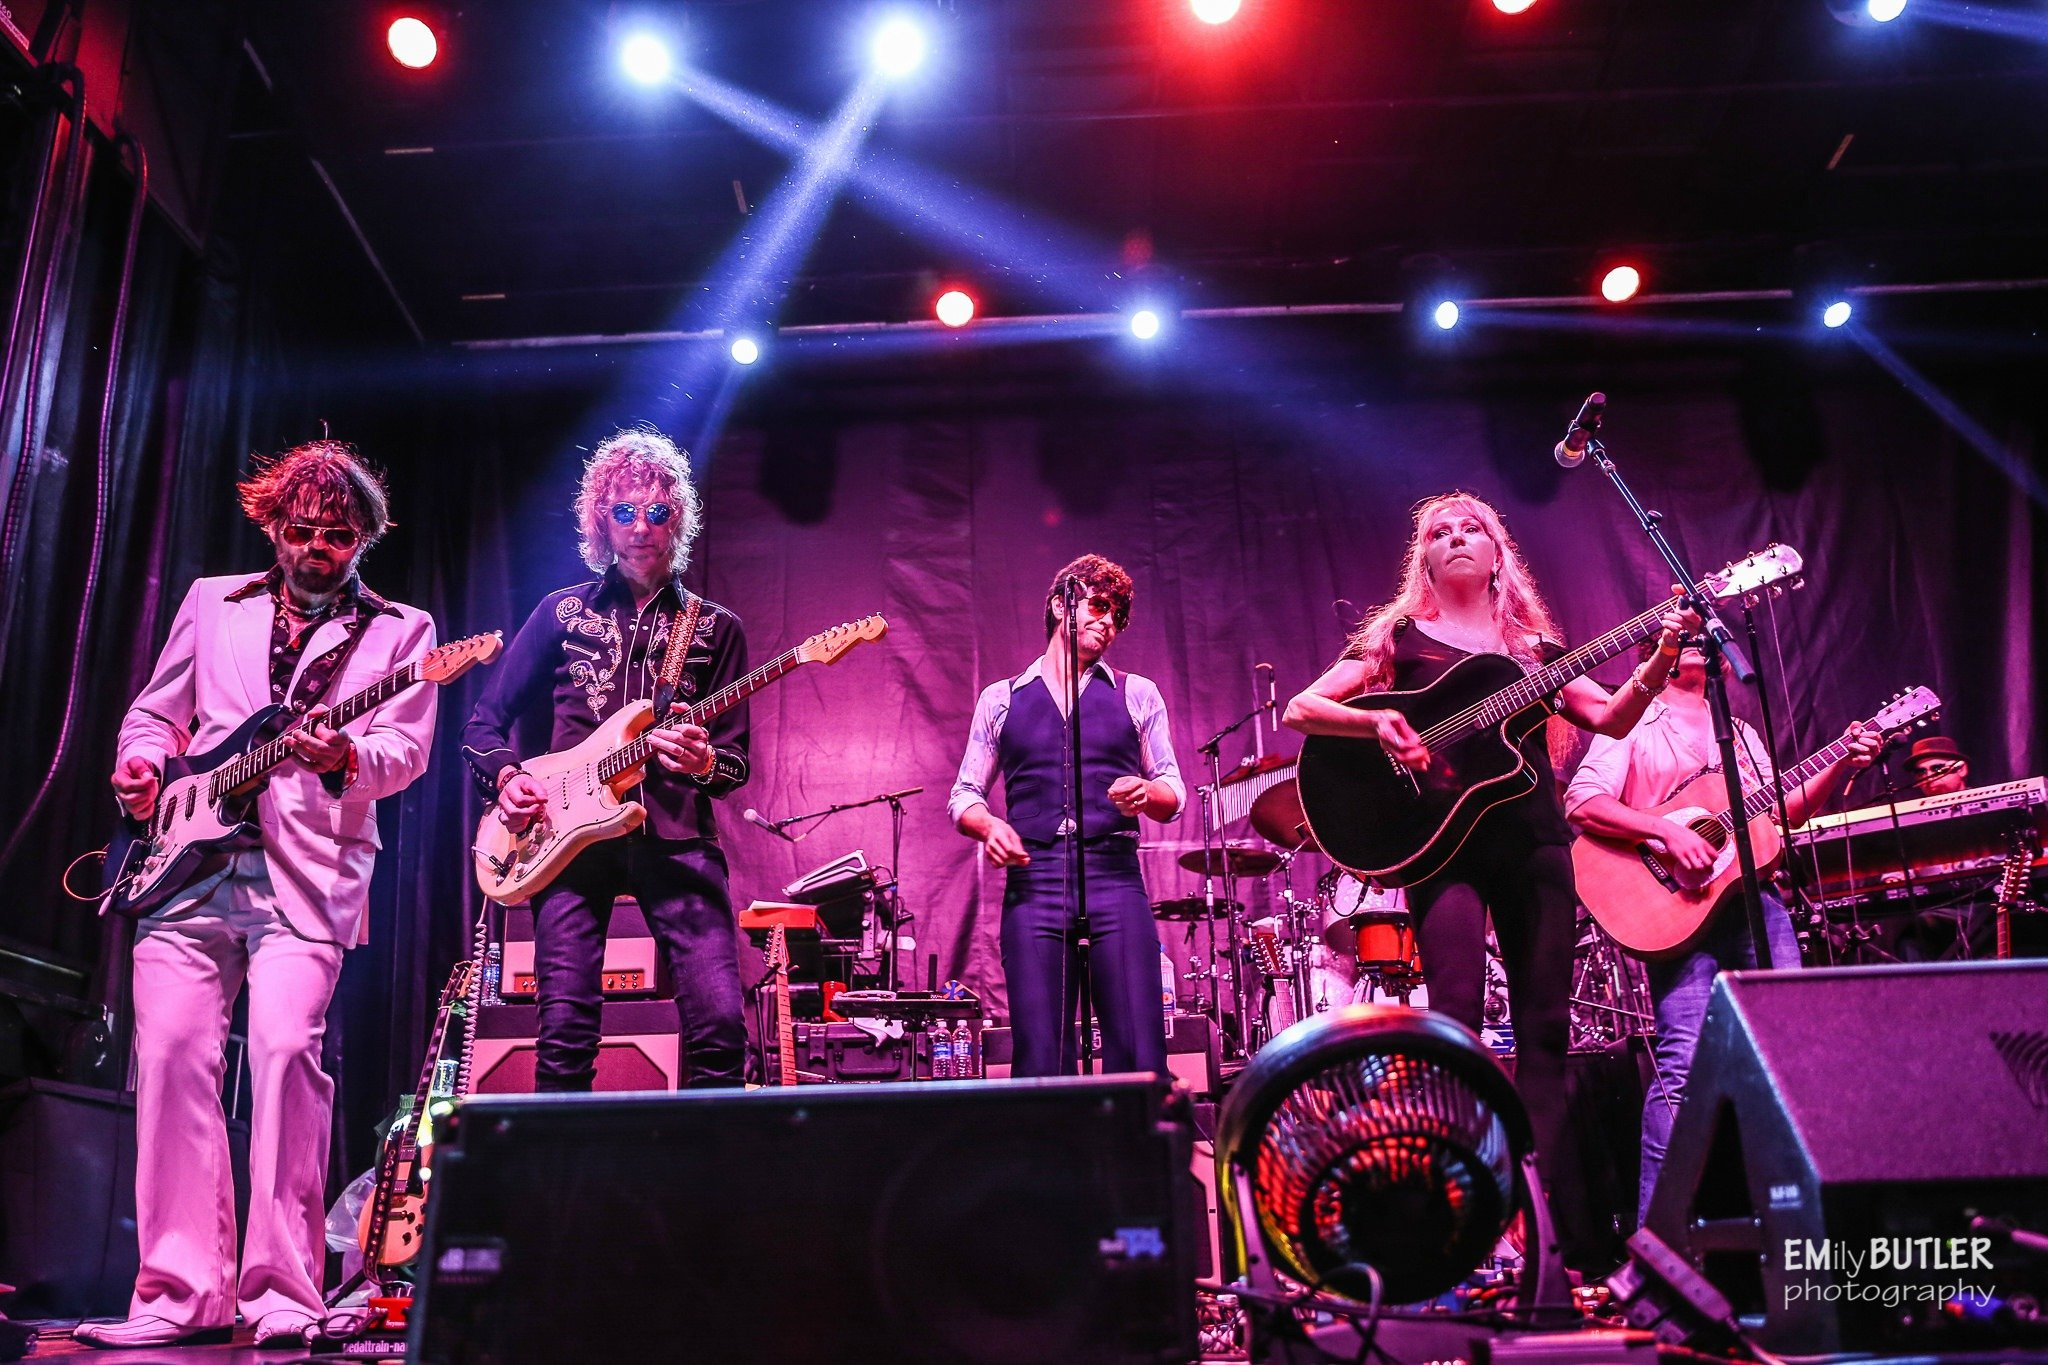 Juice performing with others at the Yacht Rock Revue show in Atlanta Georgia August 2016..